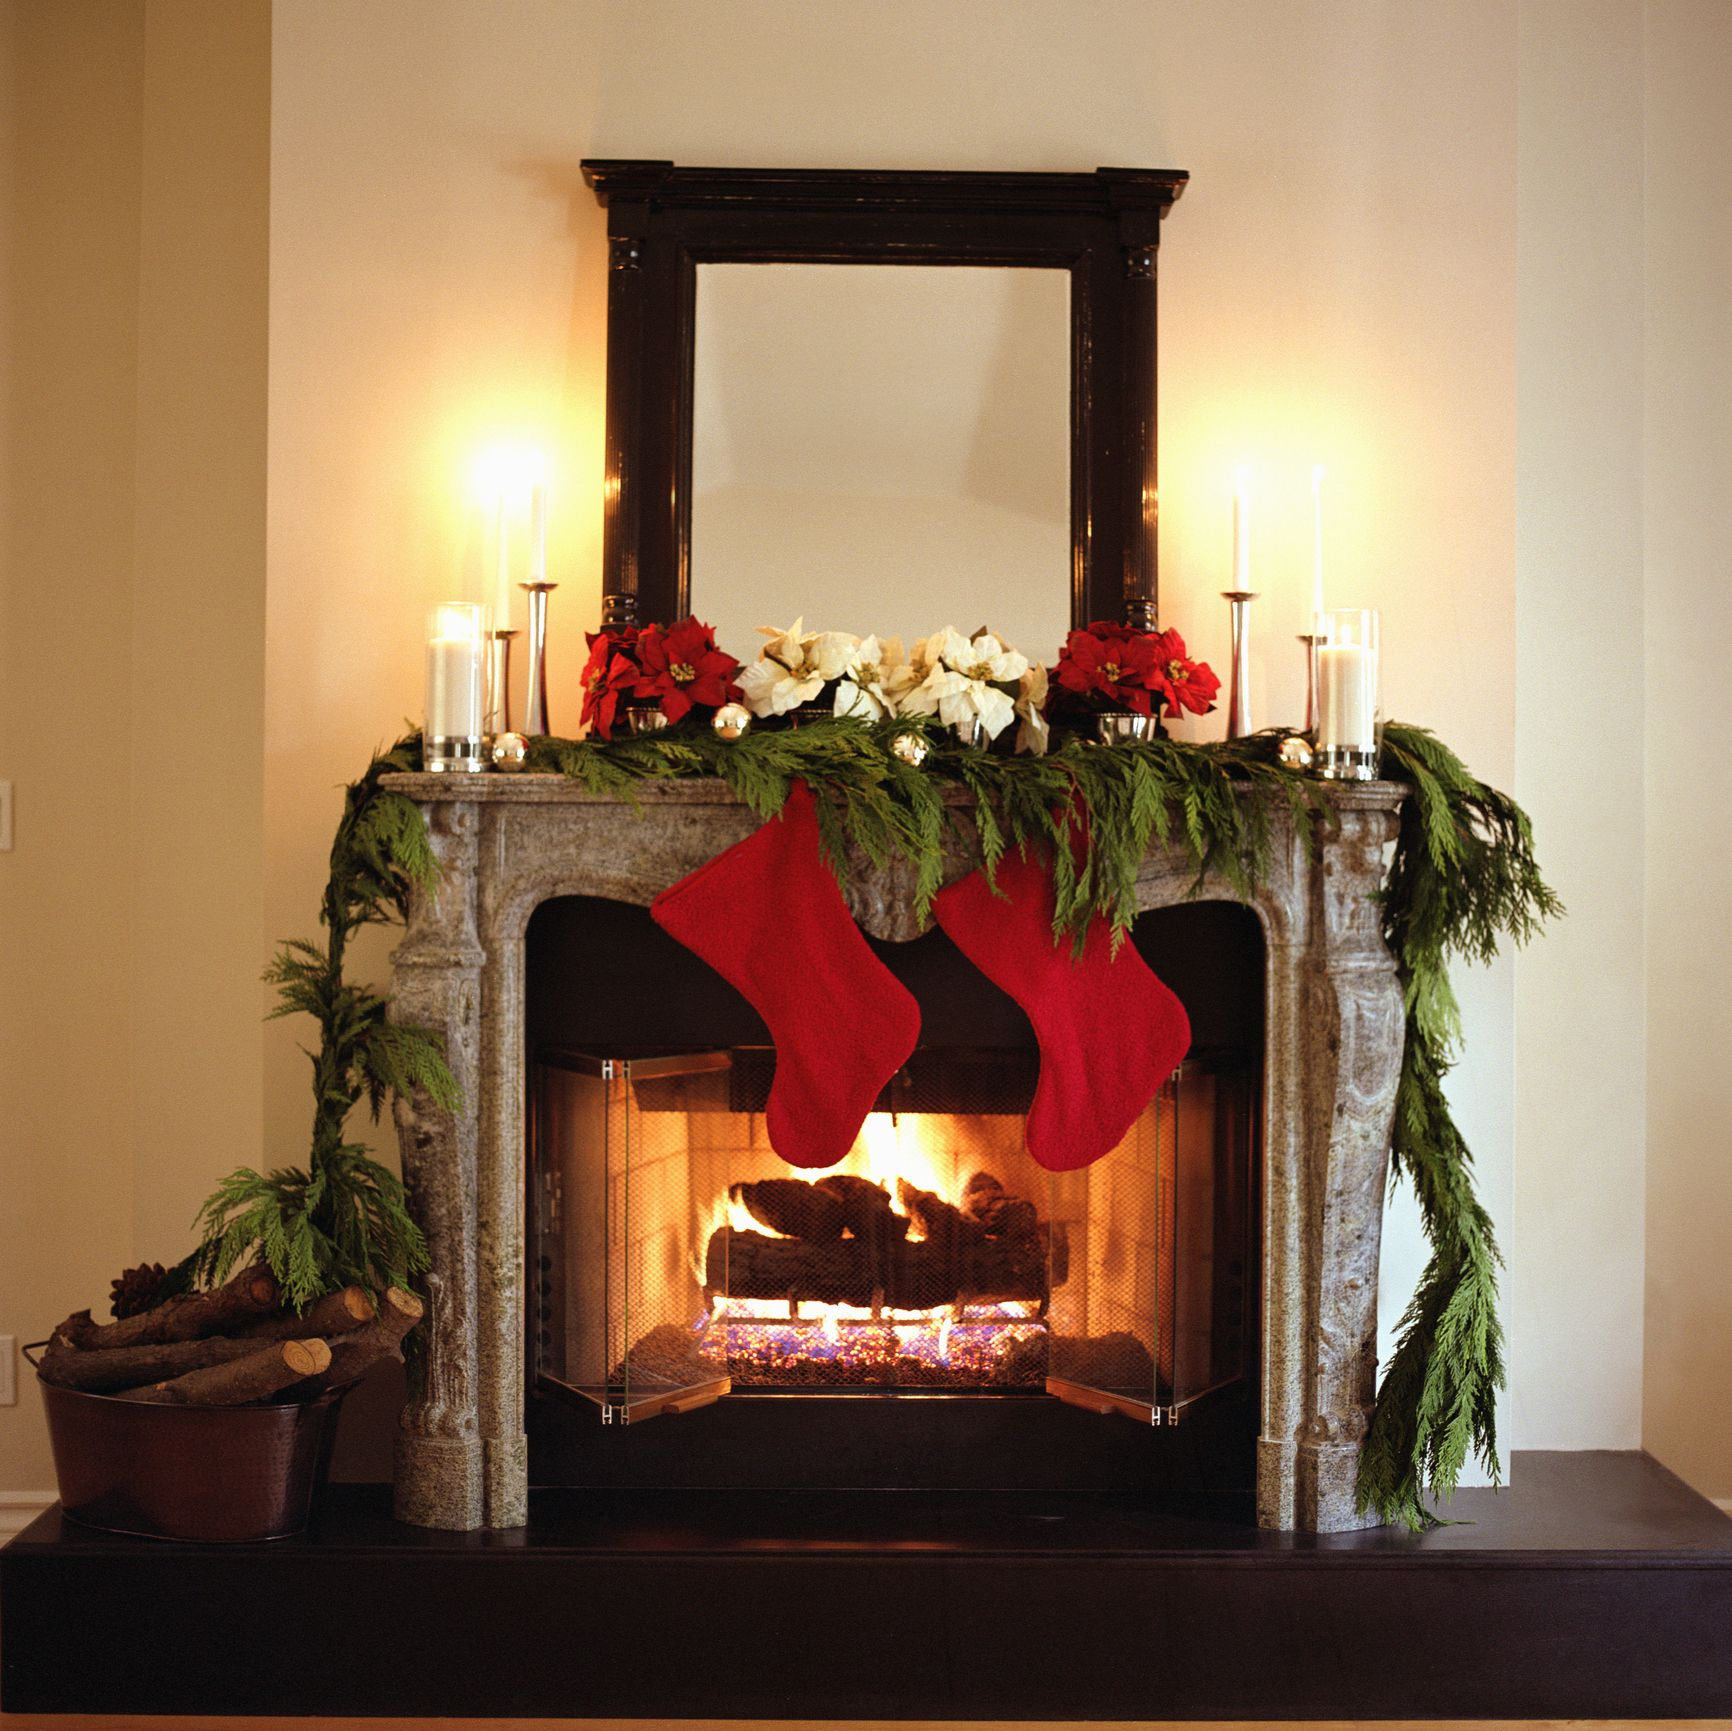 25+ Christmas Mantel Decor Ideas , Fireplace Holiday Decorations